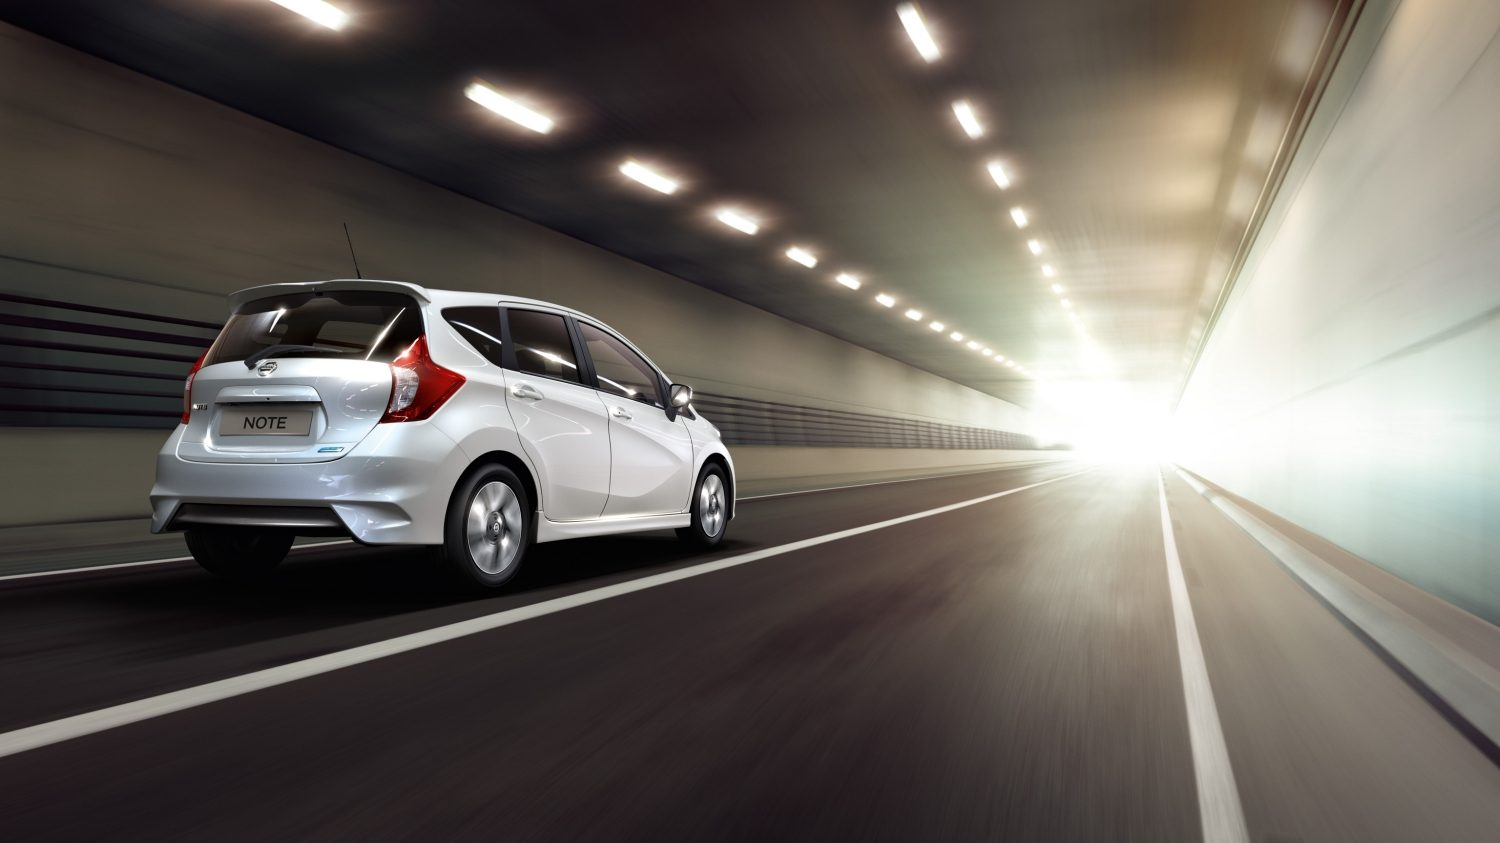 Nissan Note | Mini MPV on the road